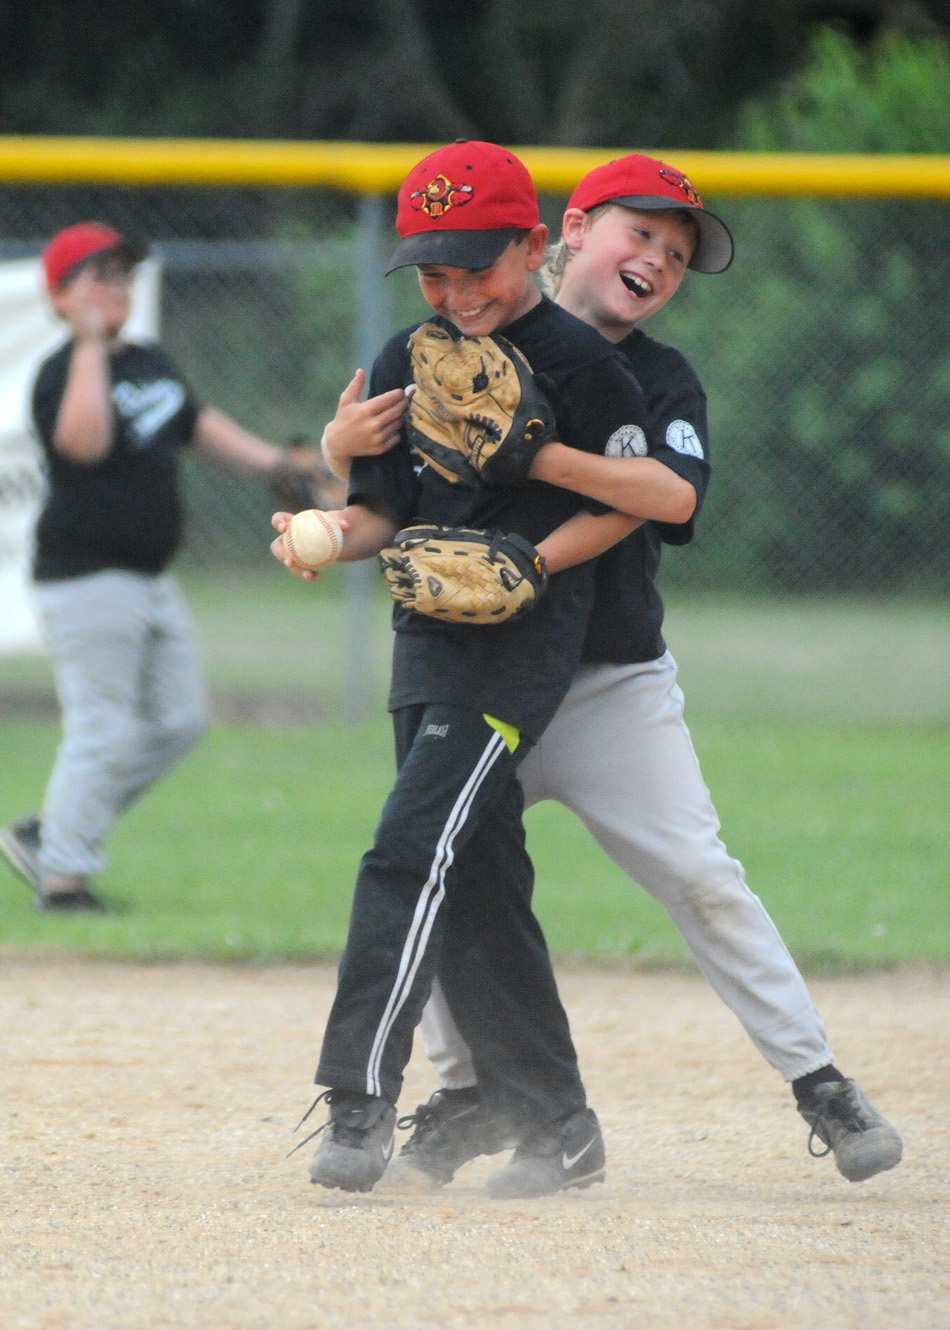 Brylee Vandiver gets a hug from teammate Braden Mickley after making a great catch for the Red Wings.